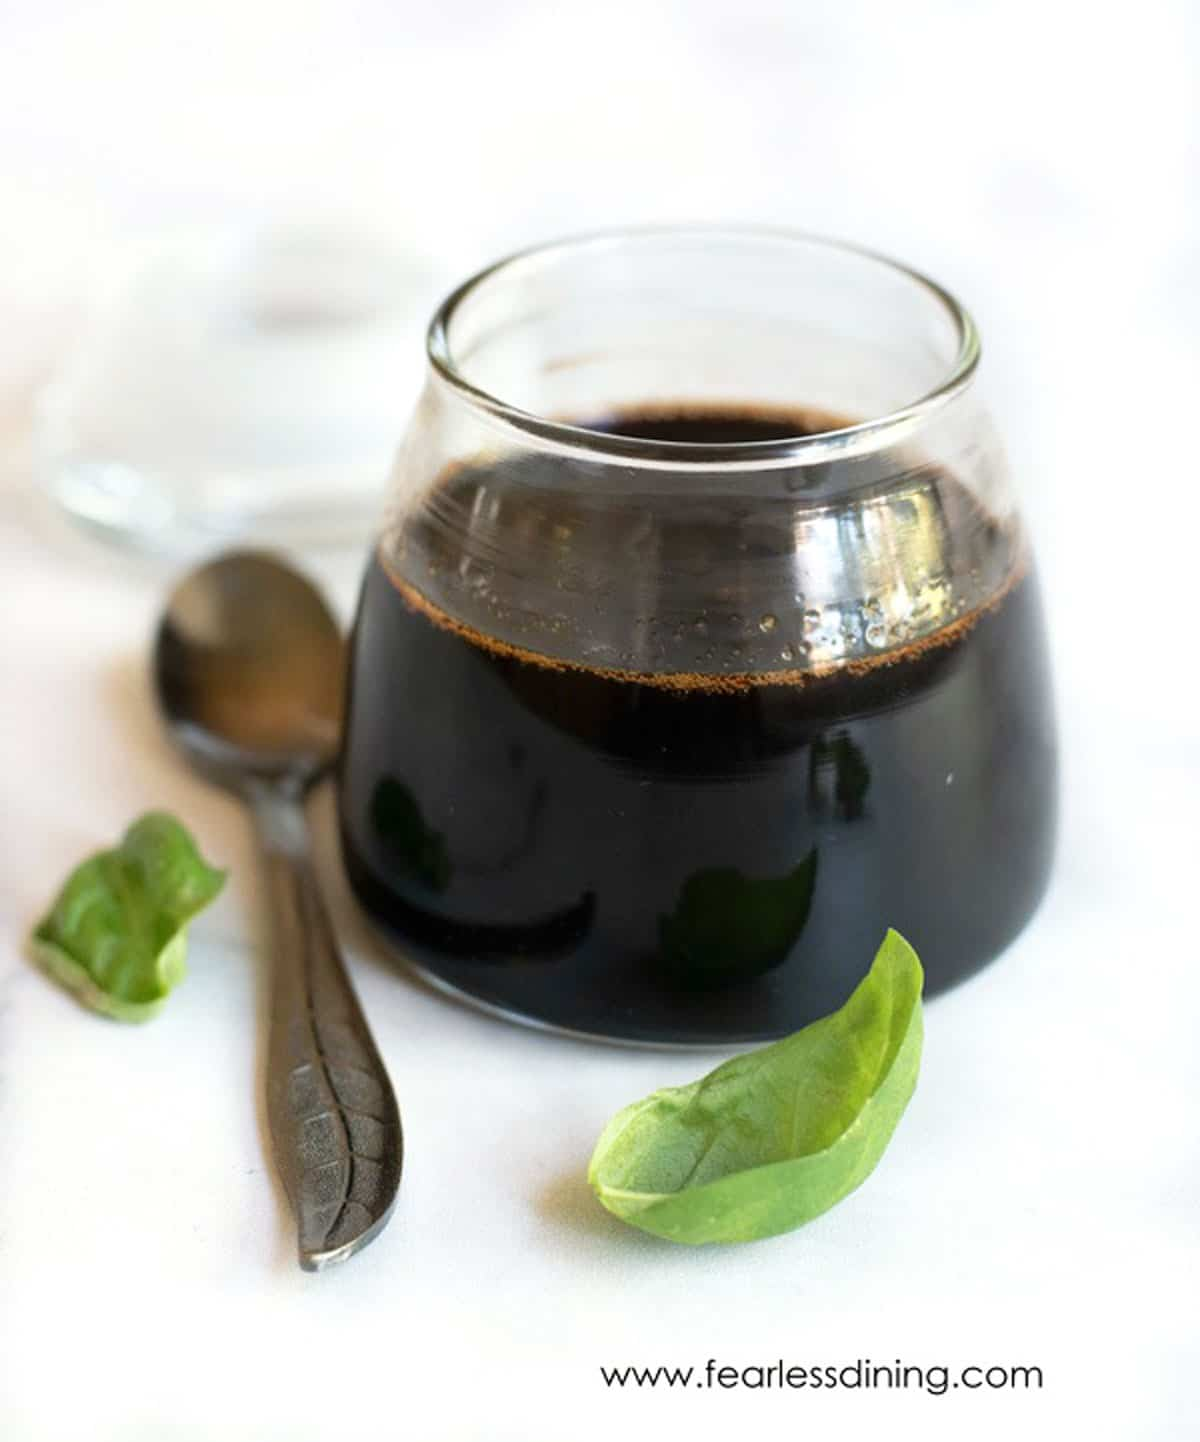 a glass filled with balsamic reduction sauce